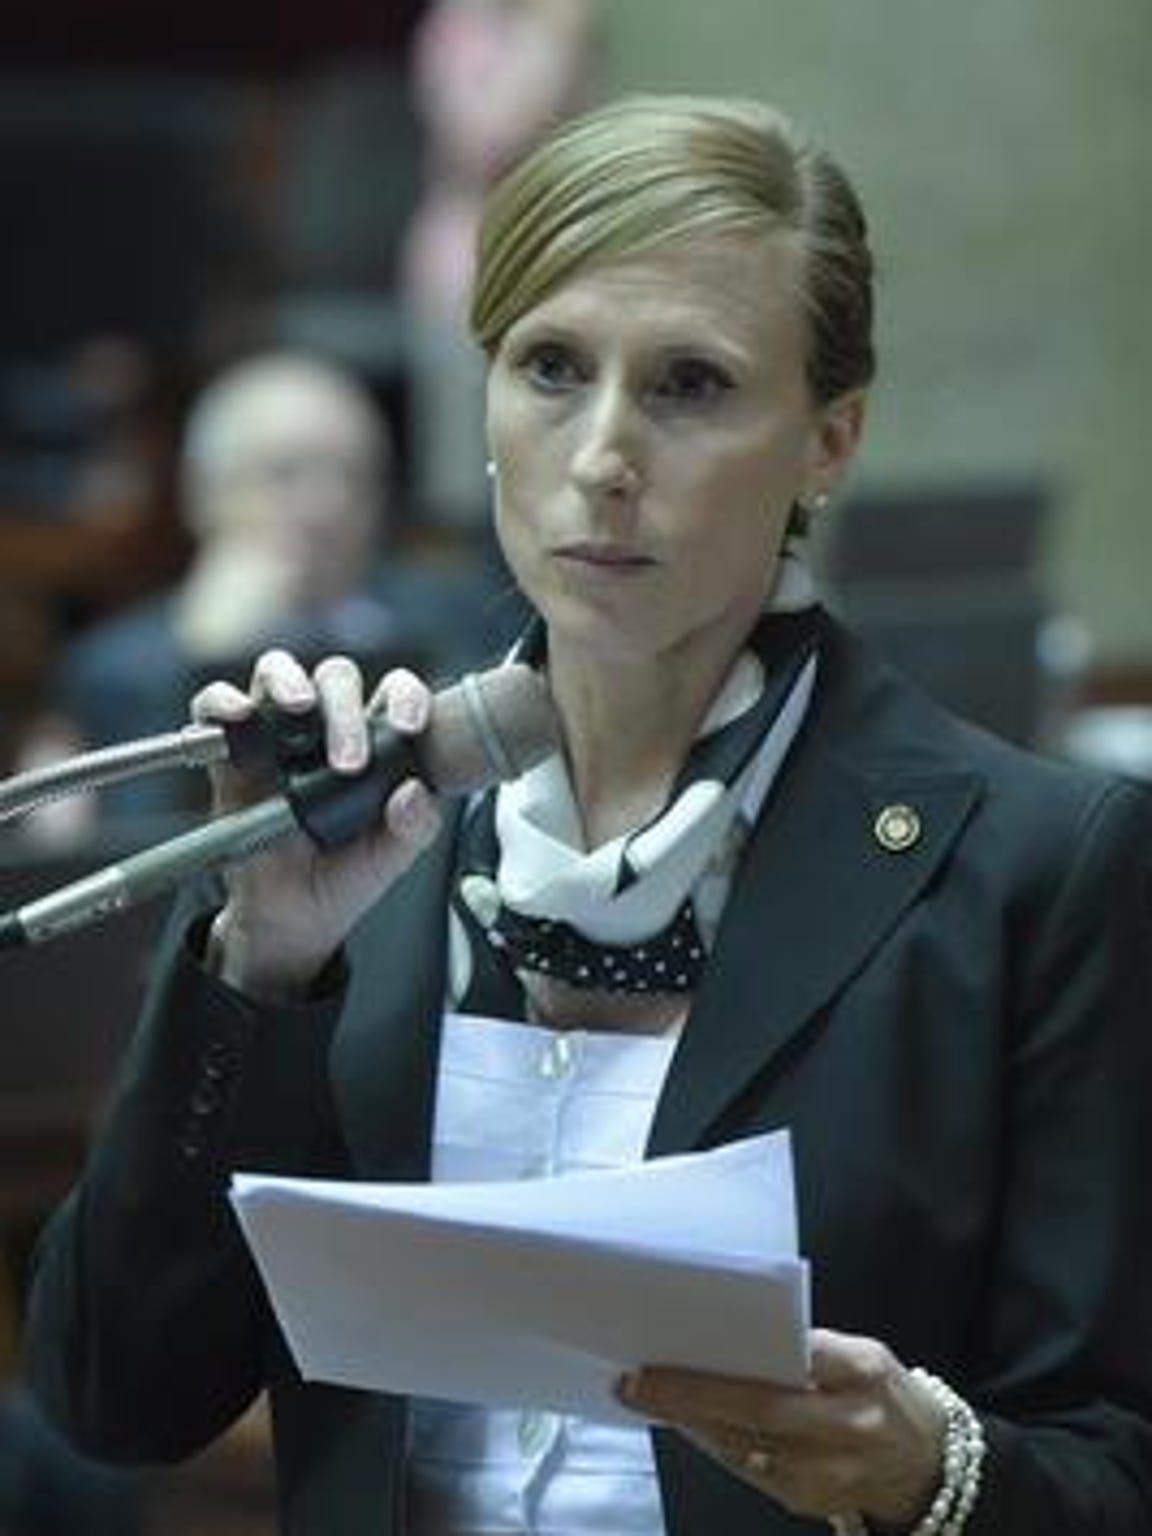 Rep. Holly Rehder is sponsoring a bill that would require sexual education classes to include instruction about consent, sexual harassment and sexual violence.